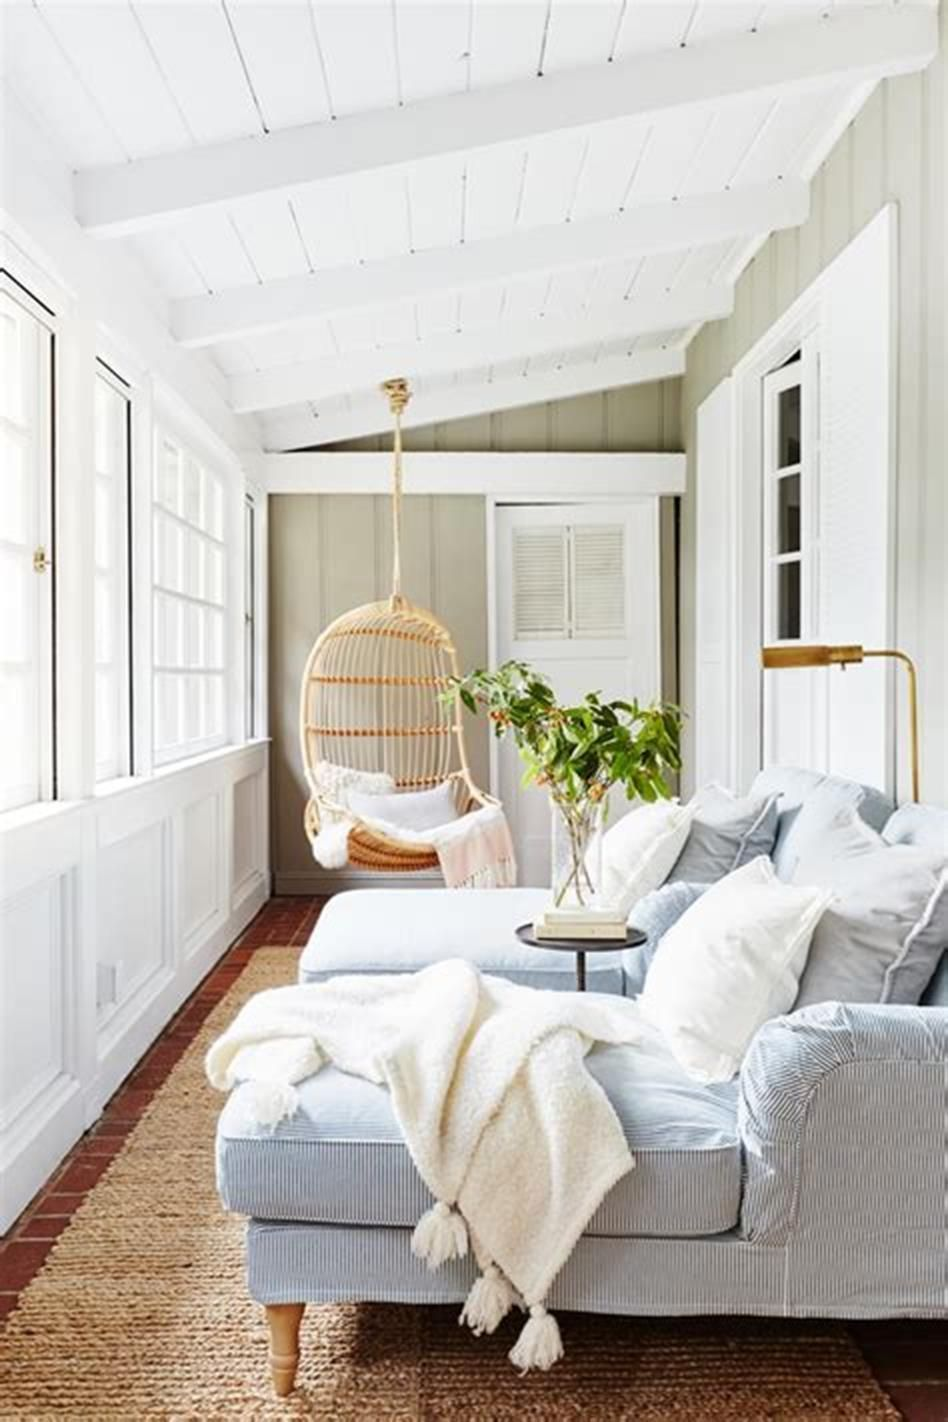 11+ Stunning Farmhouse Style Sunrooms Design and Decorating Ideas